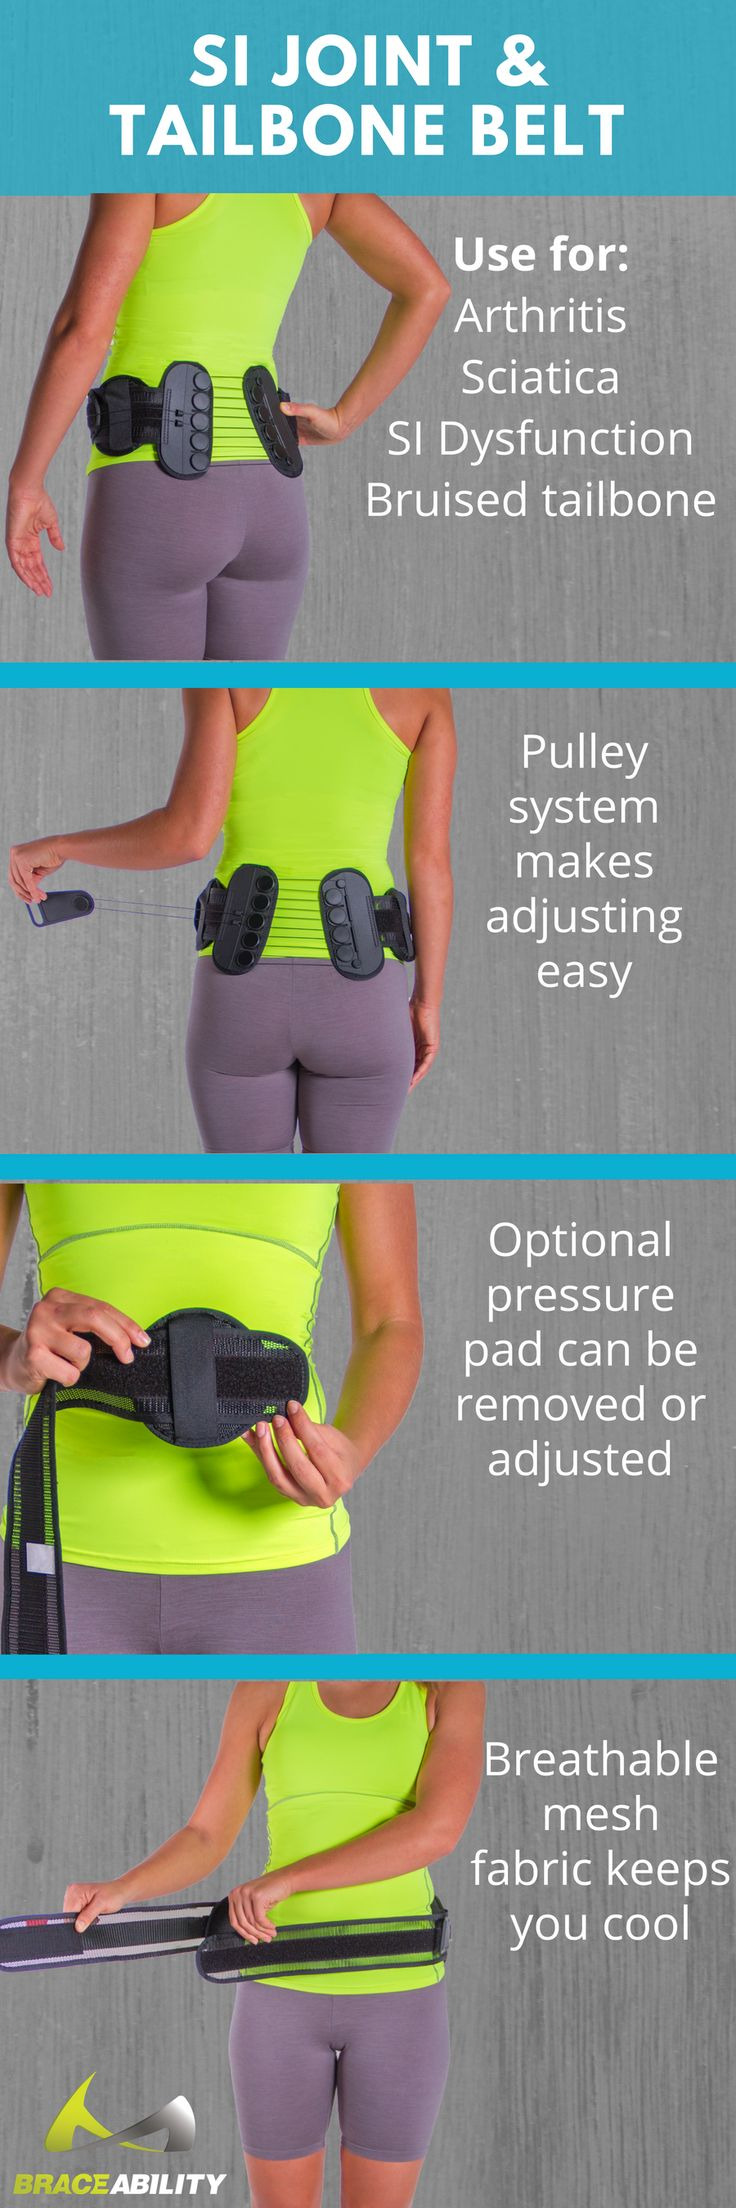 Are you dealing with pain in your SI joint or tailbone? This belt is great for treating SI joint dysfunction, a bruised tailbone and arthritis in the lower back. The pulley system helps relieve pressure on the abdomen and target the sore locations in your back!